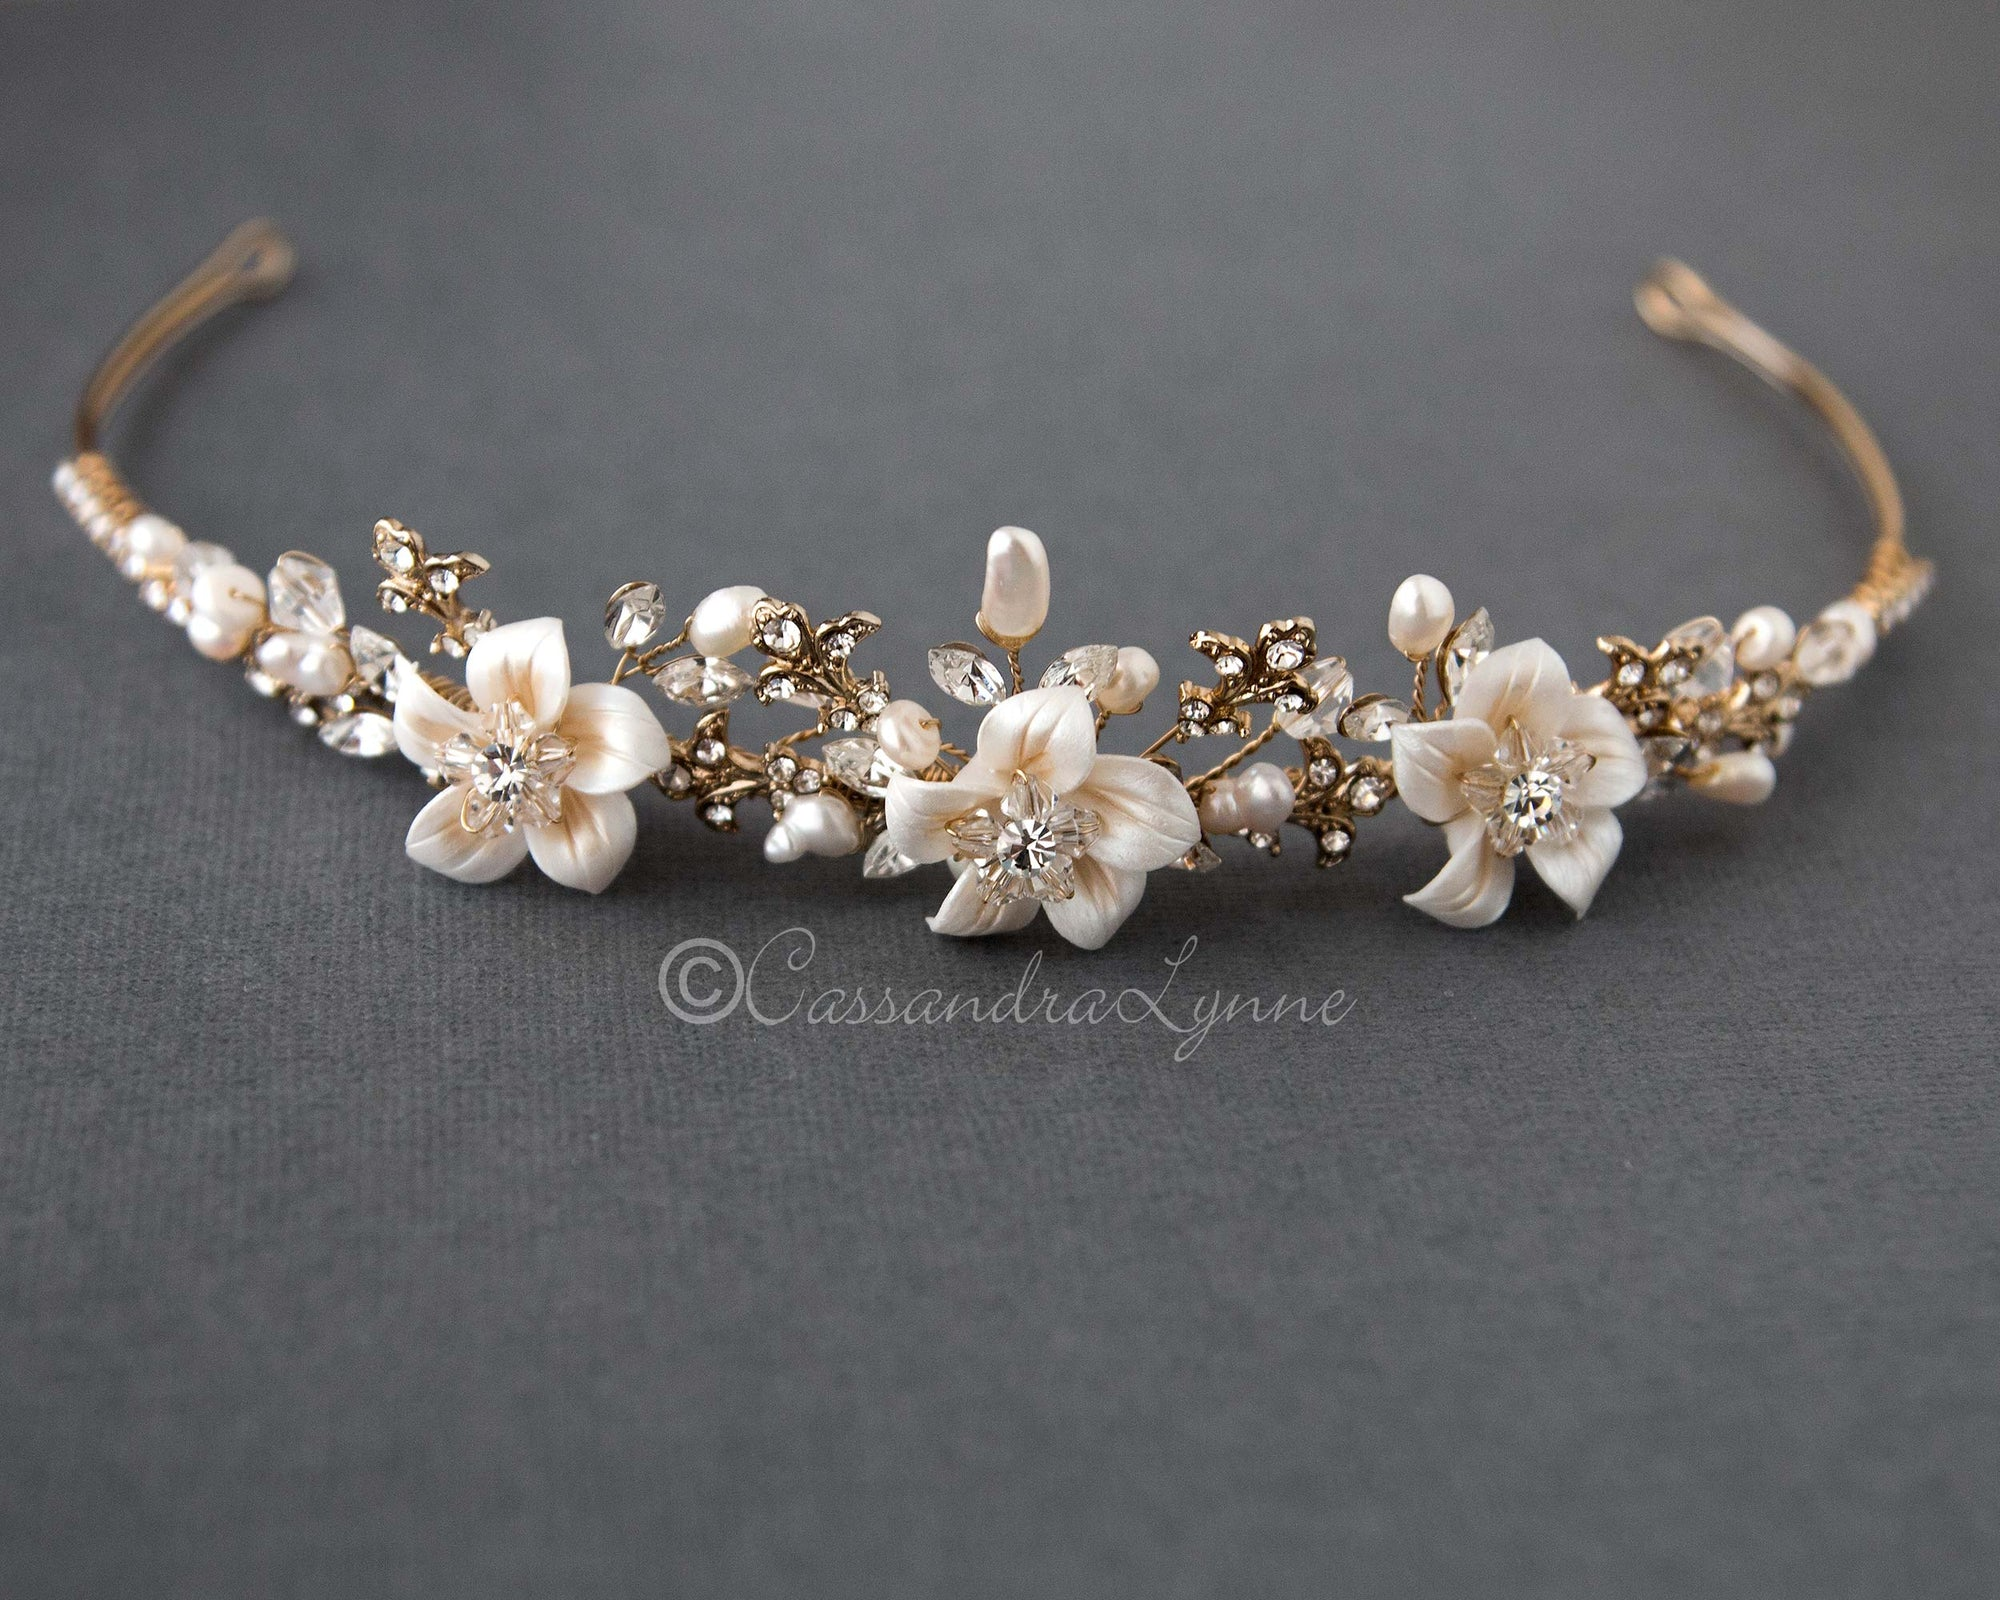 Gold Wedding Tiara with Crystals and Flowers